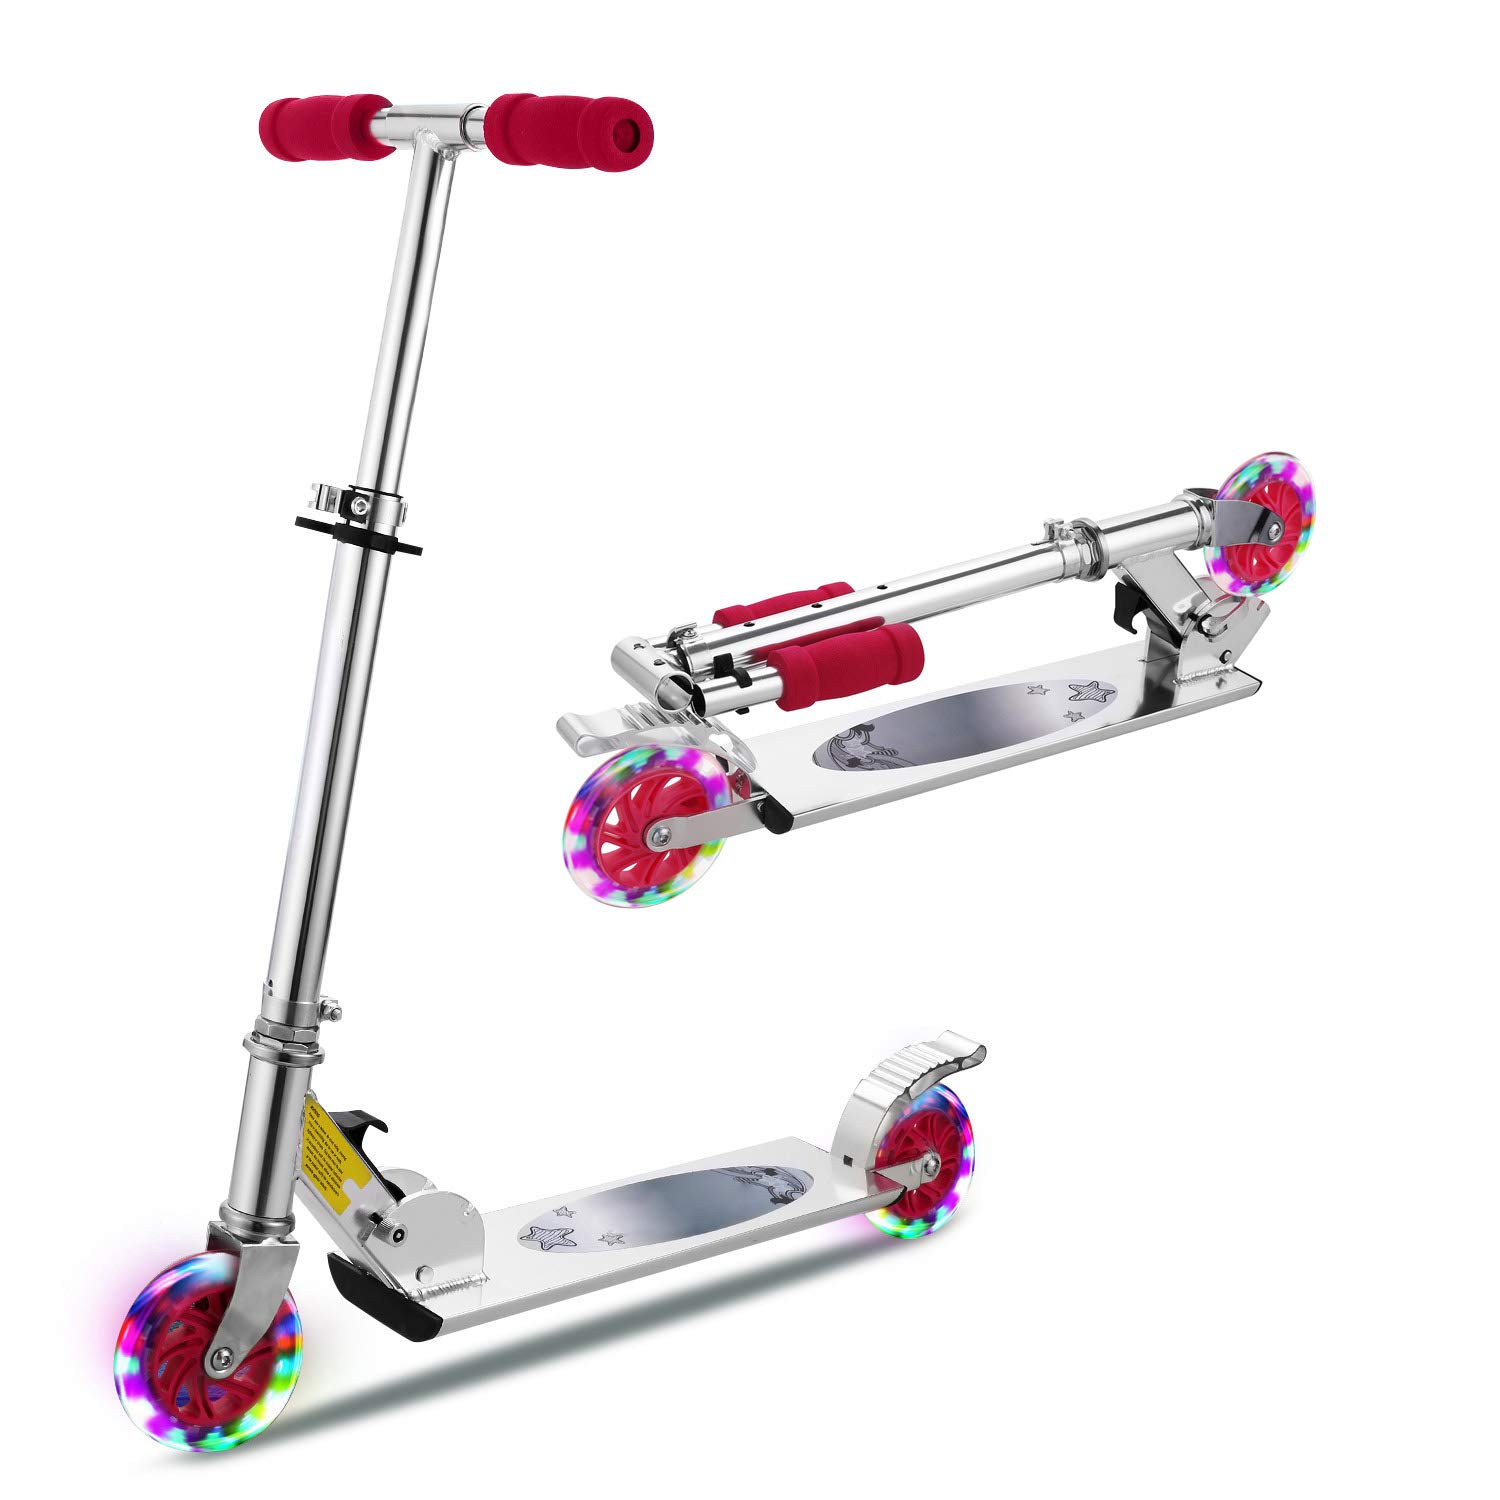 Top 10 Best Kick Scooter For Commuting - Buyer's Guide 36